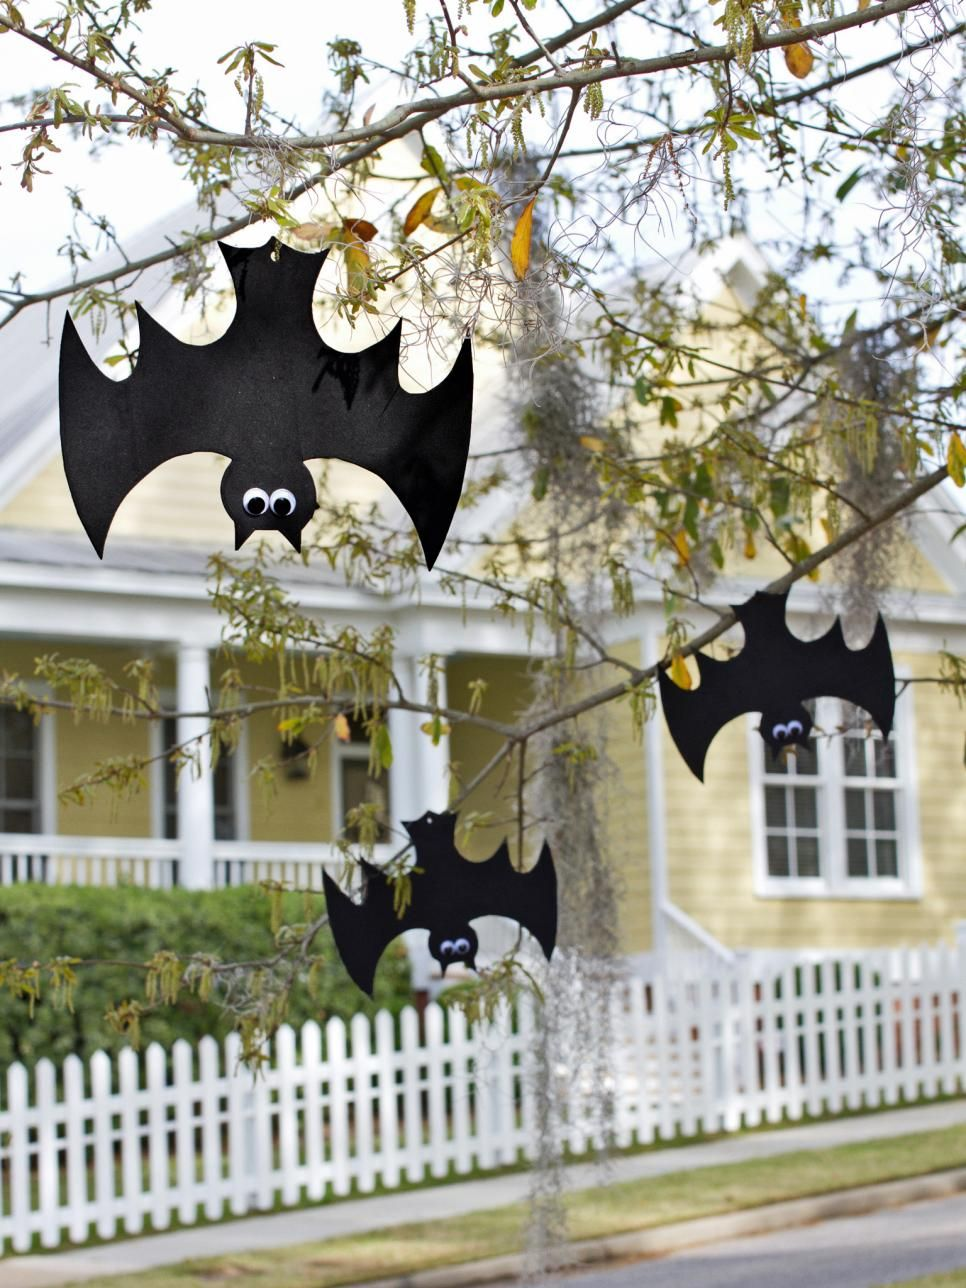 35+ Halloween Party Ideas Pinterest Handmade decorations - Cheap Diy Halloween Decorations